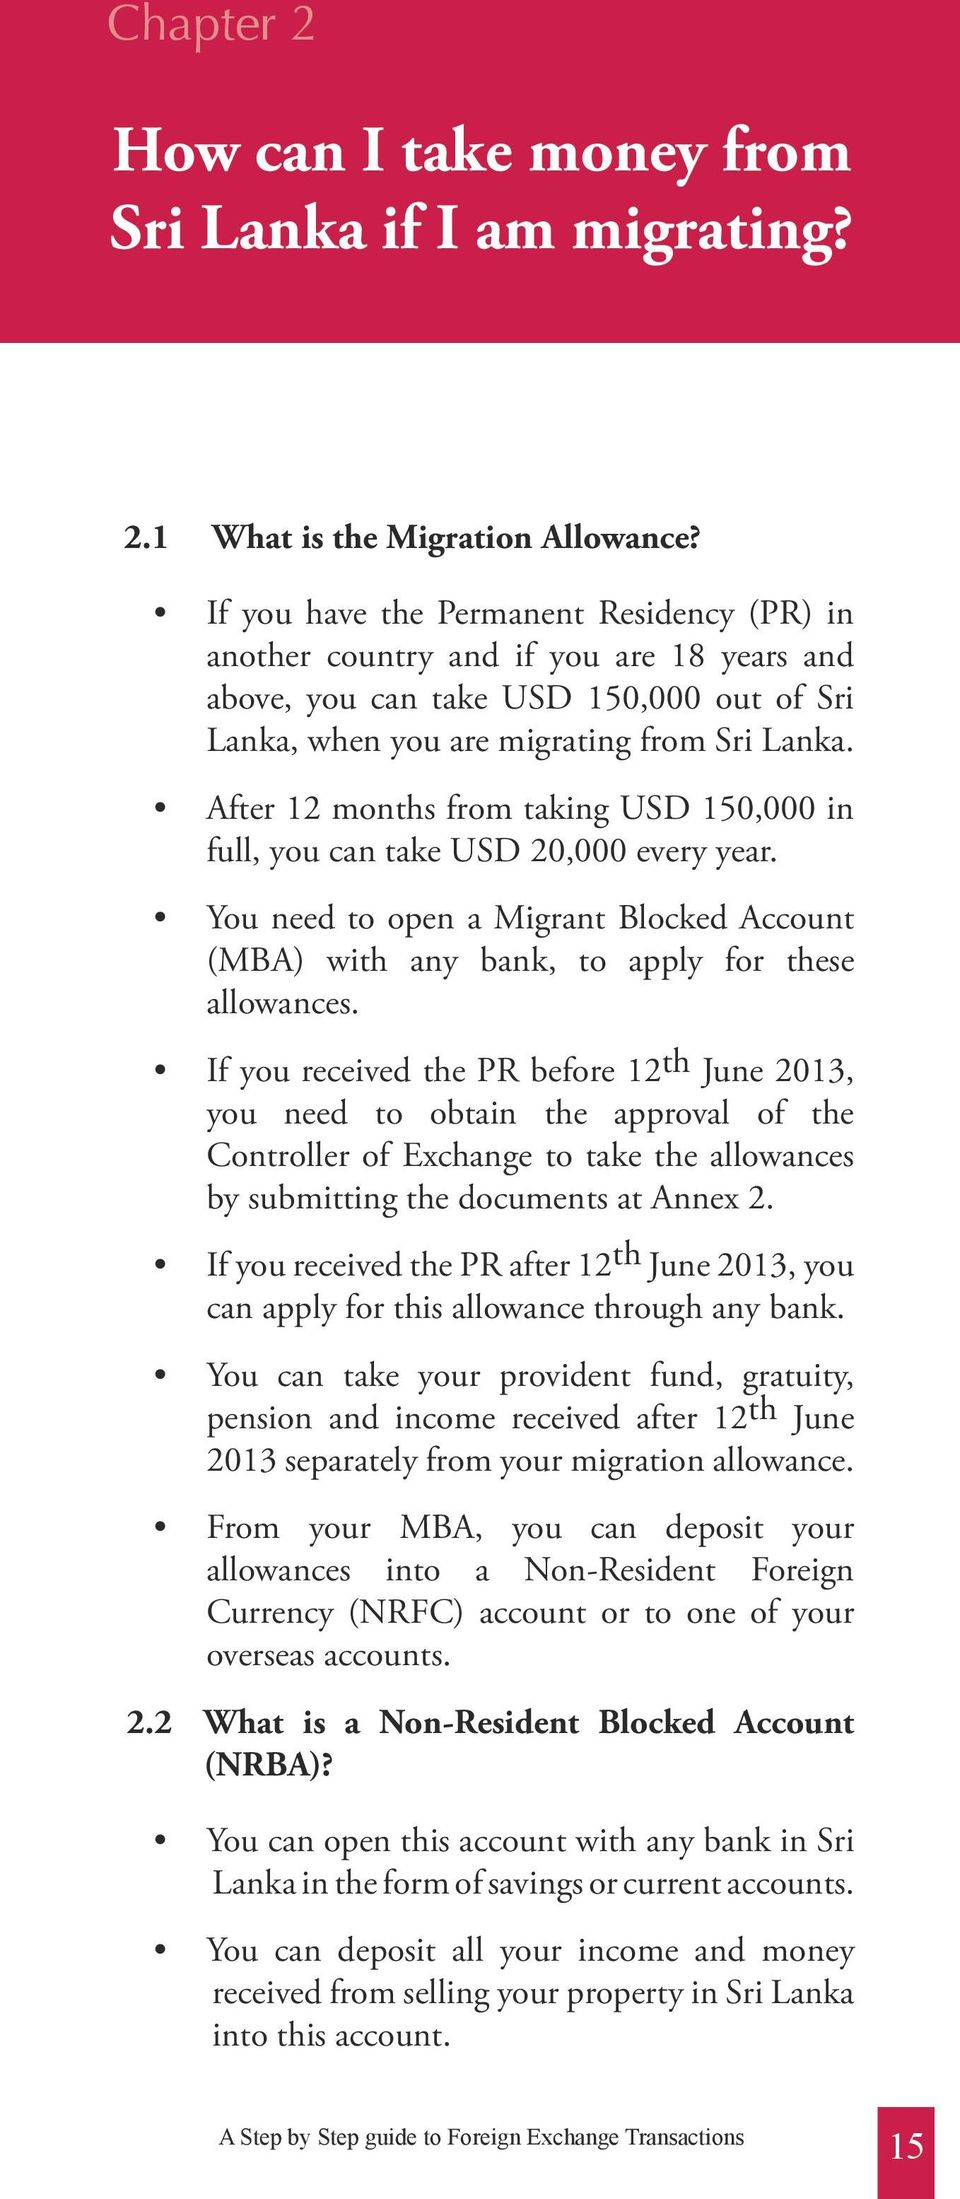 After 12 months from taking USD 150,000 in full, you can take USD 20,000 every year. You need to open a Migrant Blocked Account (MBA) with any bank, to apply for these allowances.